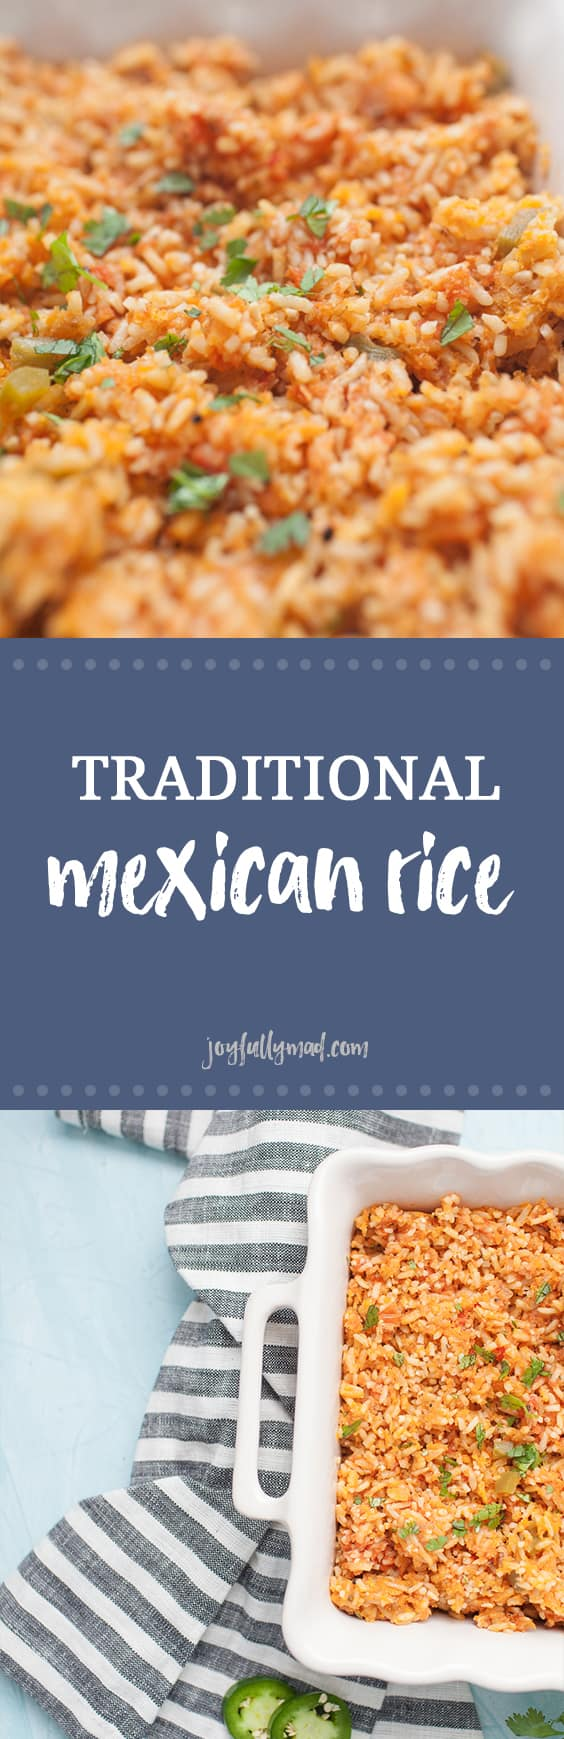 If you love Mexican food but want that restaurant quality food at home, this Traditional Mexican Rice is for you! This recipe is easy to make and bakes in the oven, which locks in the flavor and moisture that makes this recipe so delicious. You'll never go back to eating Mexican rice any other way!?